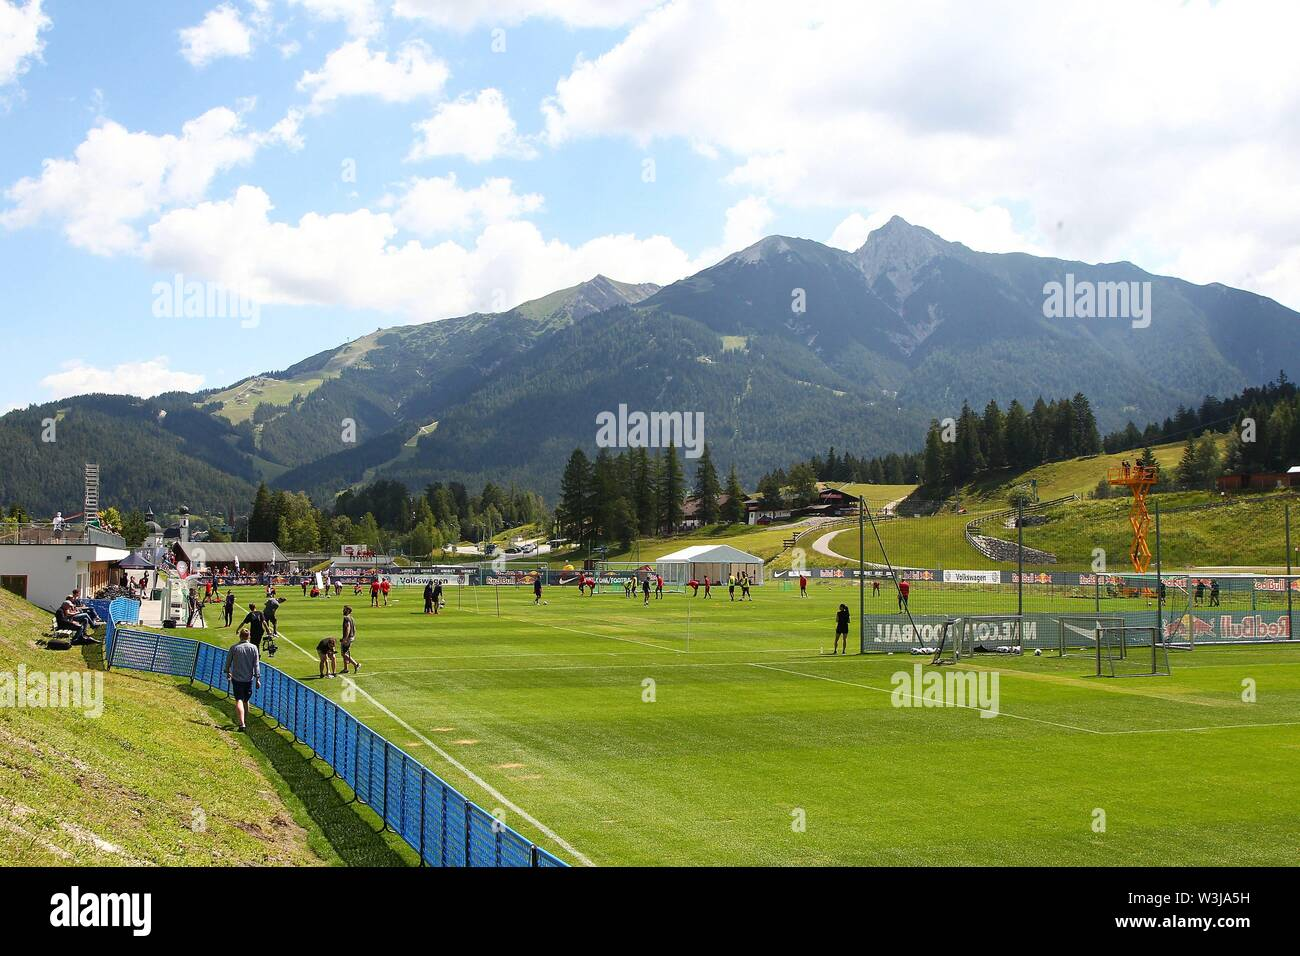 Seefeld, Austria 16. July 2019: 1. BL - 19/20 - RB Leipzig - Training camp - 16.07.19 Training of RB Leipzig, training ground with Seefelder and Reither Spitze in the background, Feature/Symbol/Symbolfoto/charakteristisch/Detail/| usage worldwide - Stock Image